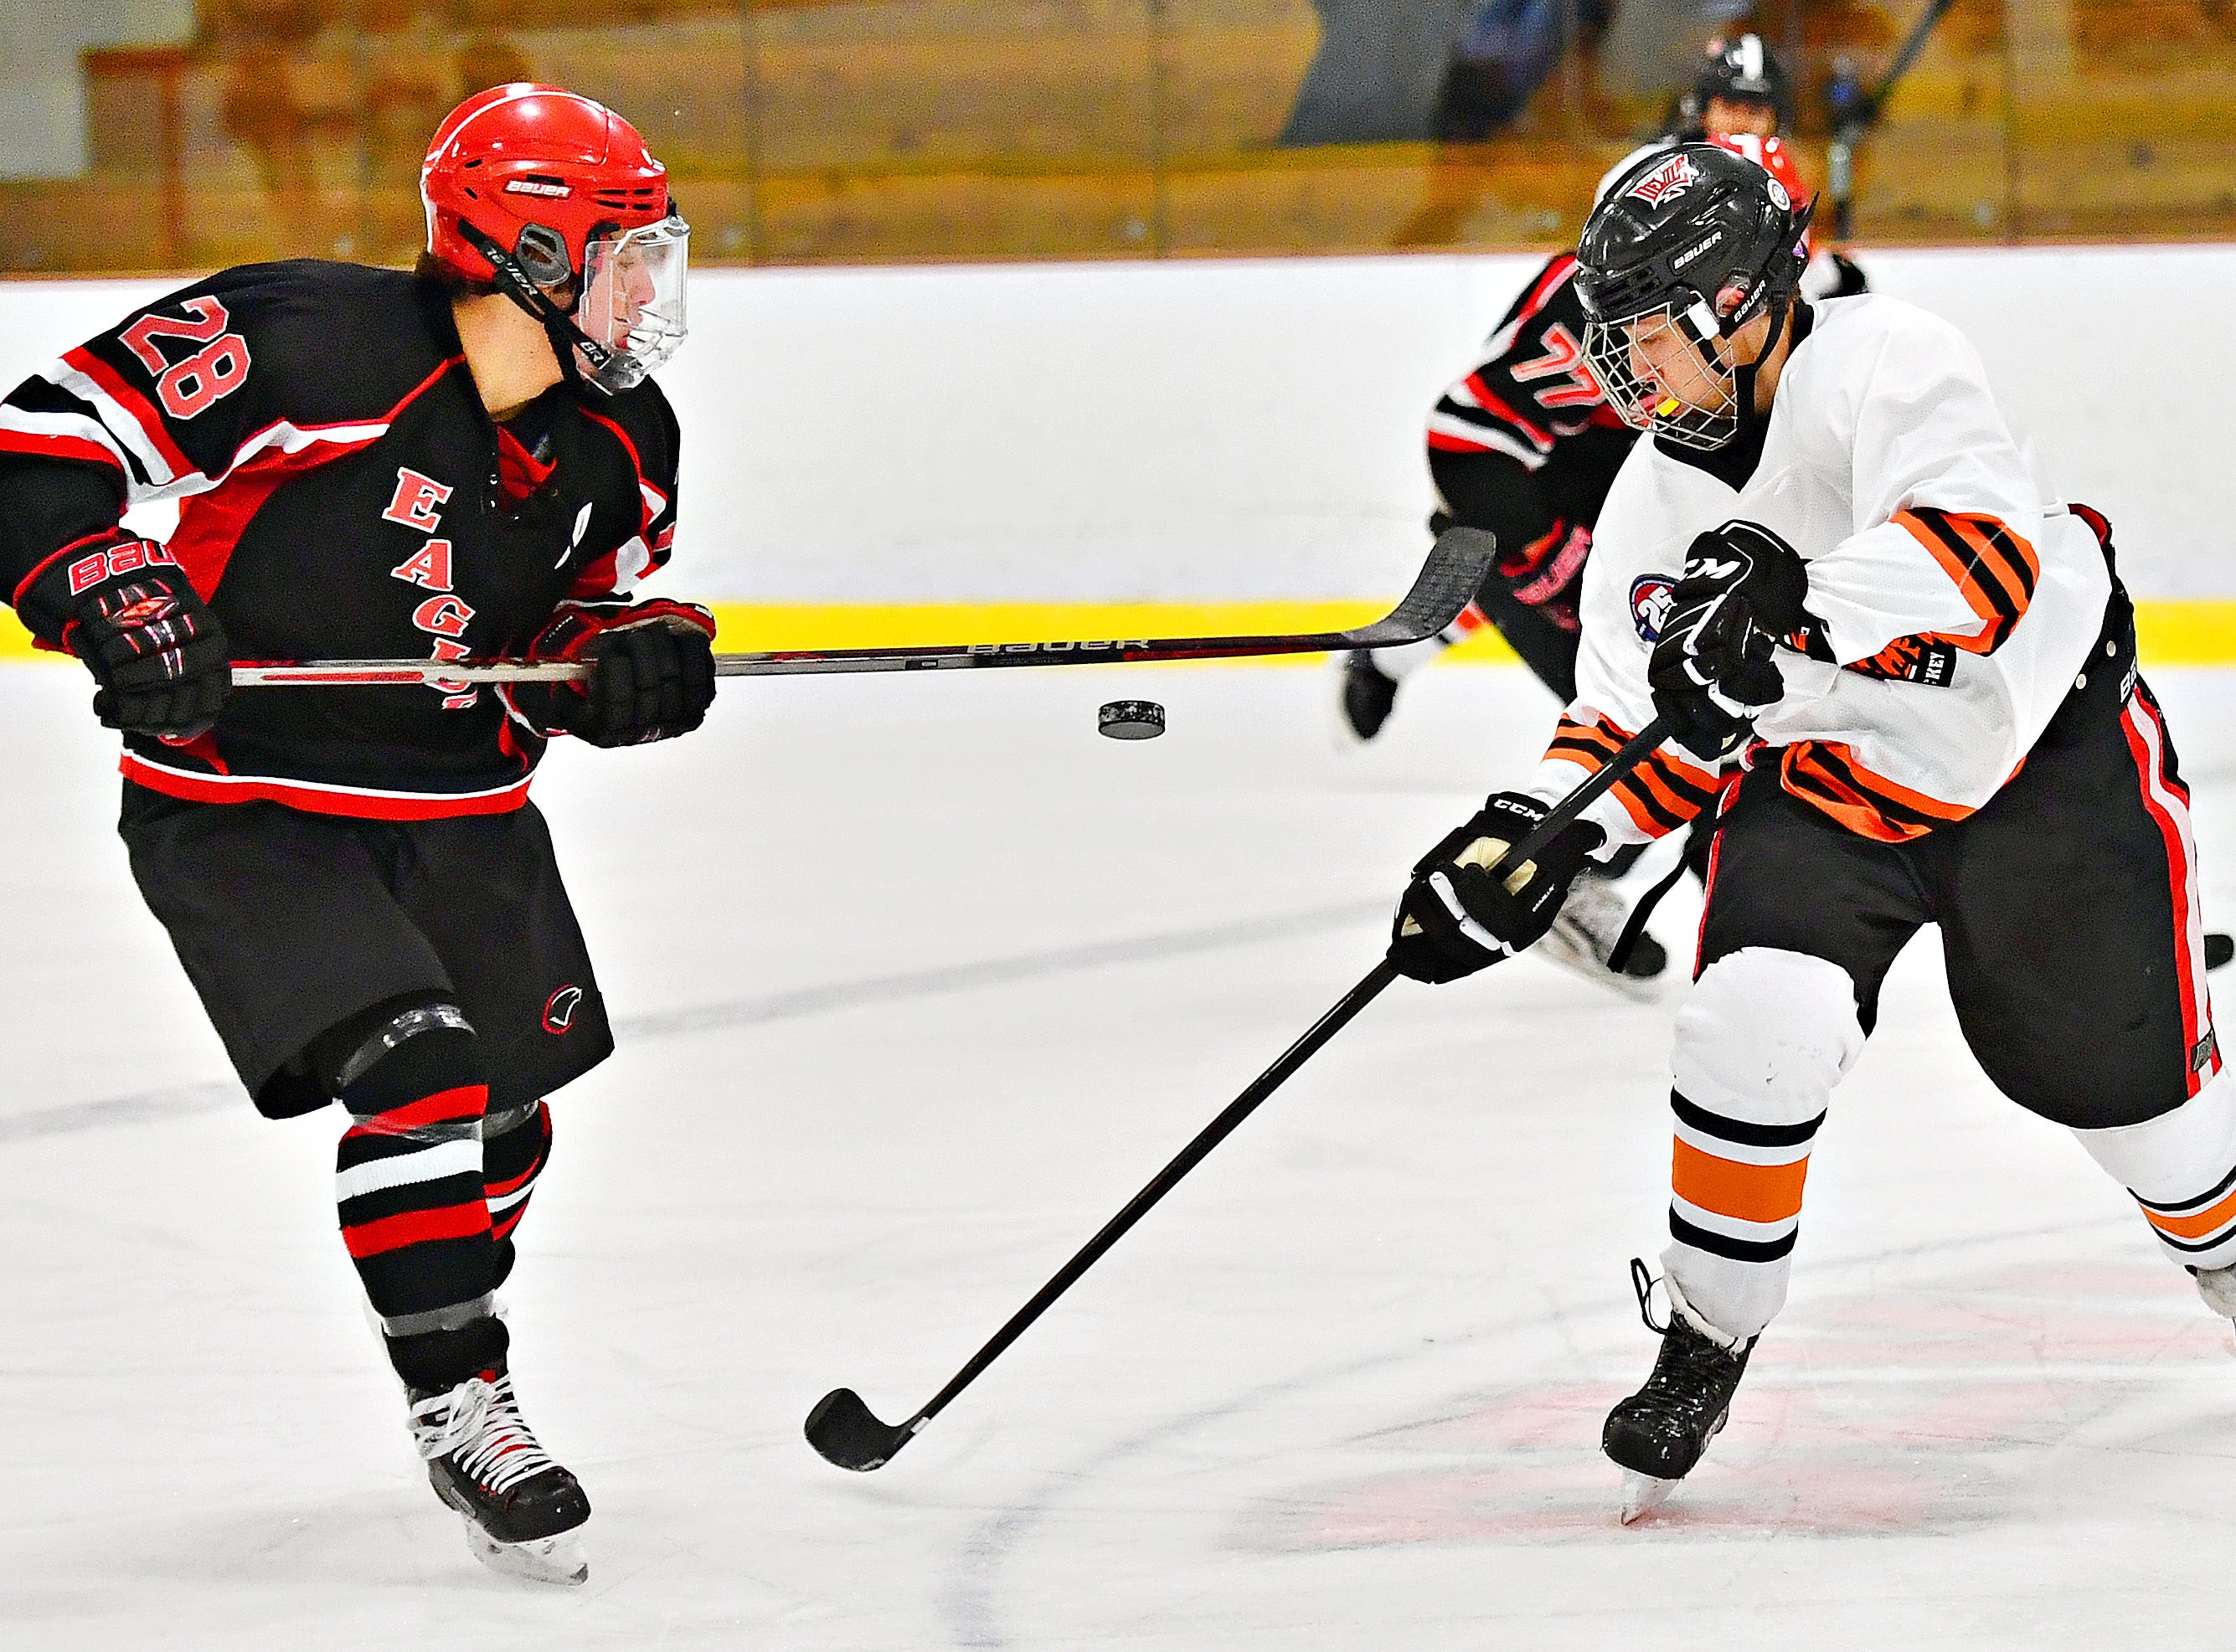 Central York vs Cumberland Valley during ice hockey action at York Ice Arena in York City, Wednesday, Dec. 5, 2018. Dawn J. Sagert photo